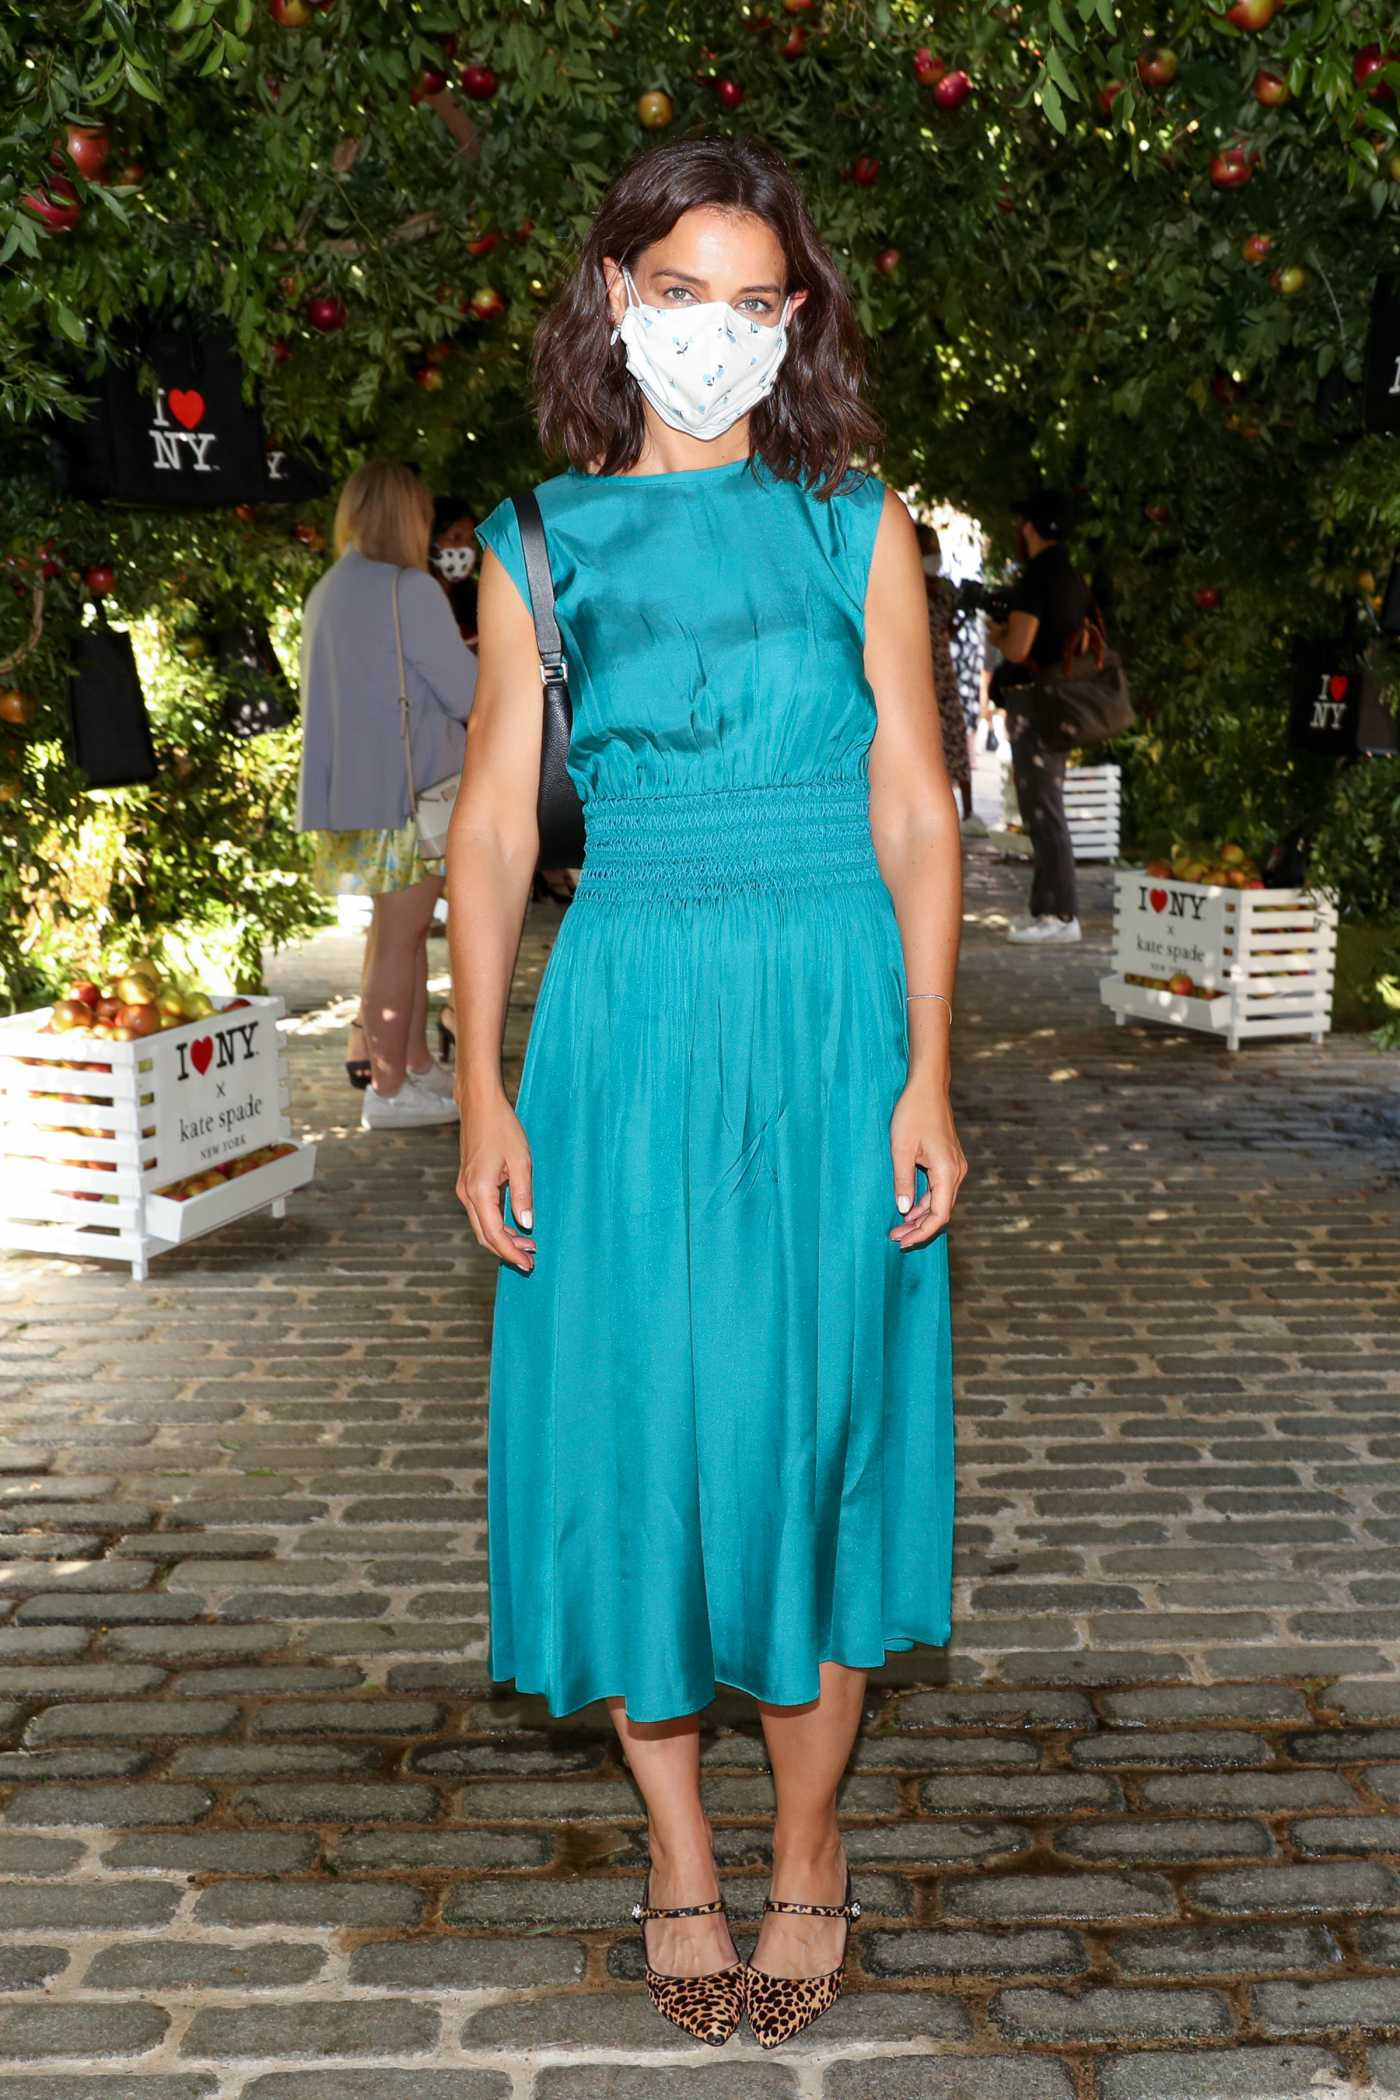 Katie Holmes in a Blue Dress Attends the Kate Spade New York Popup Installation VIP Opening Party in New York City 09/08/2021